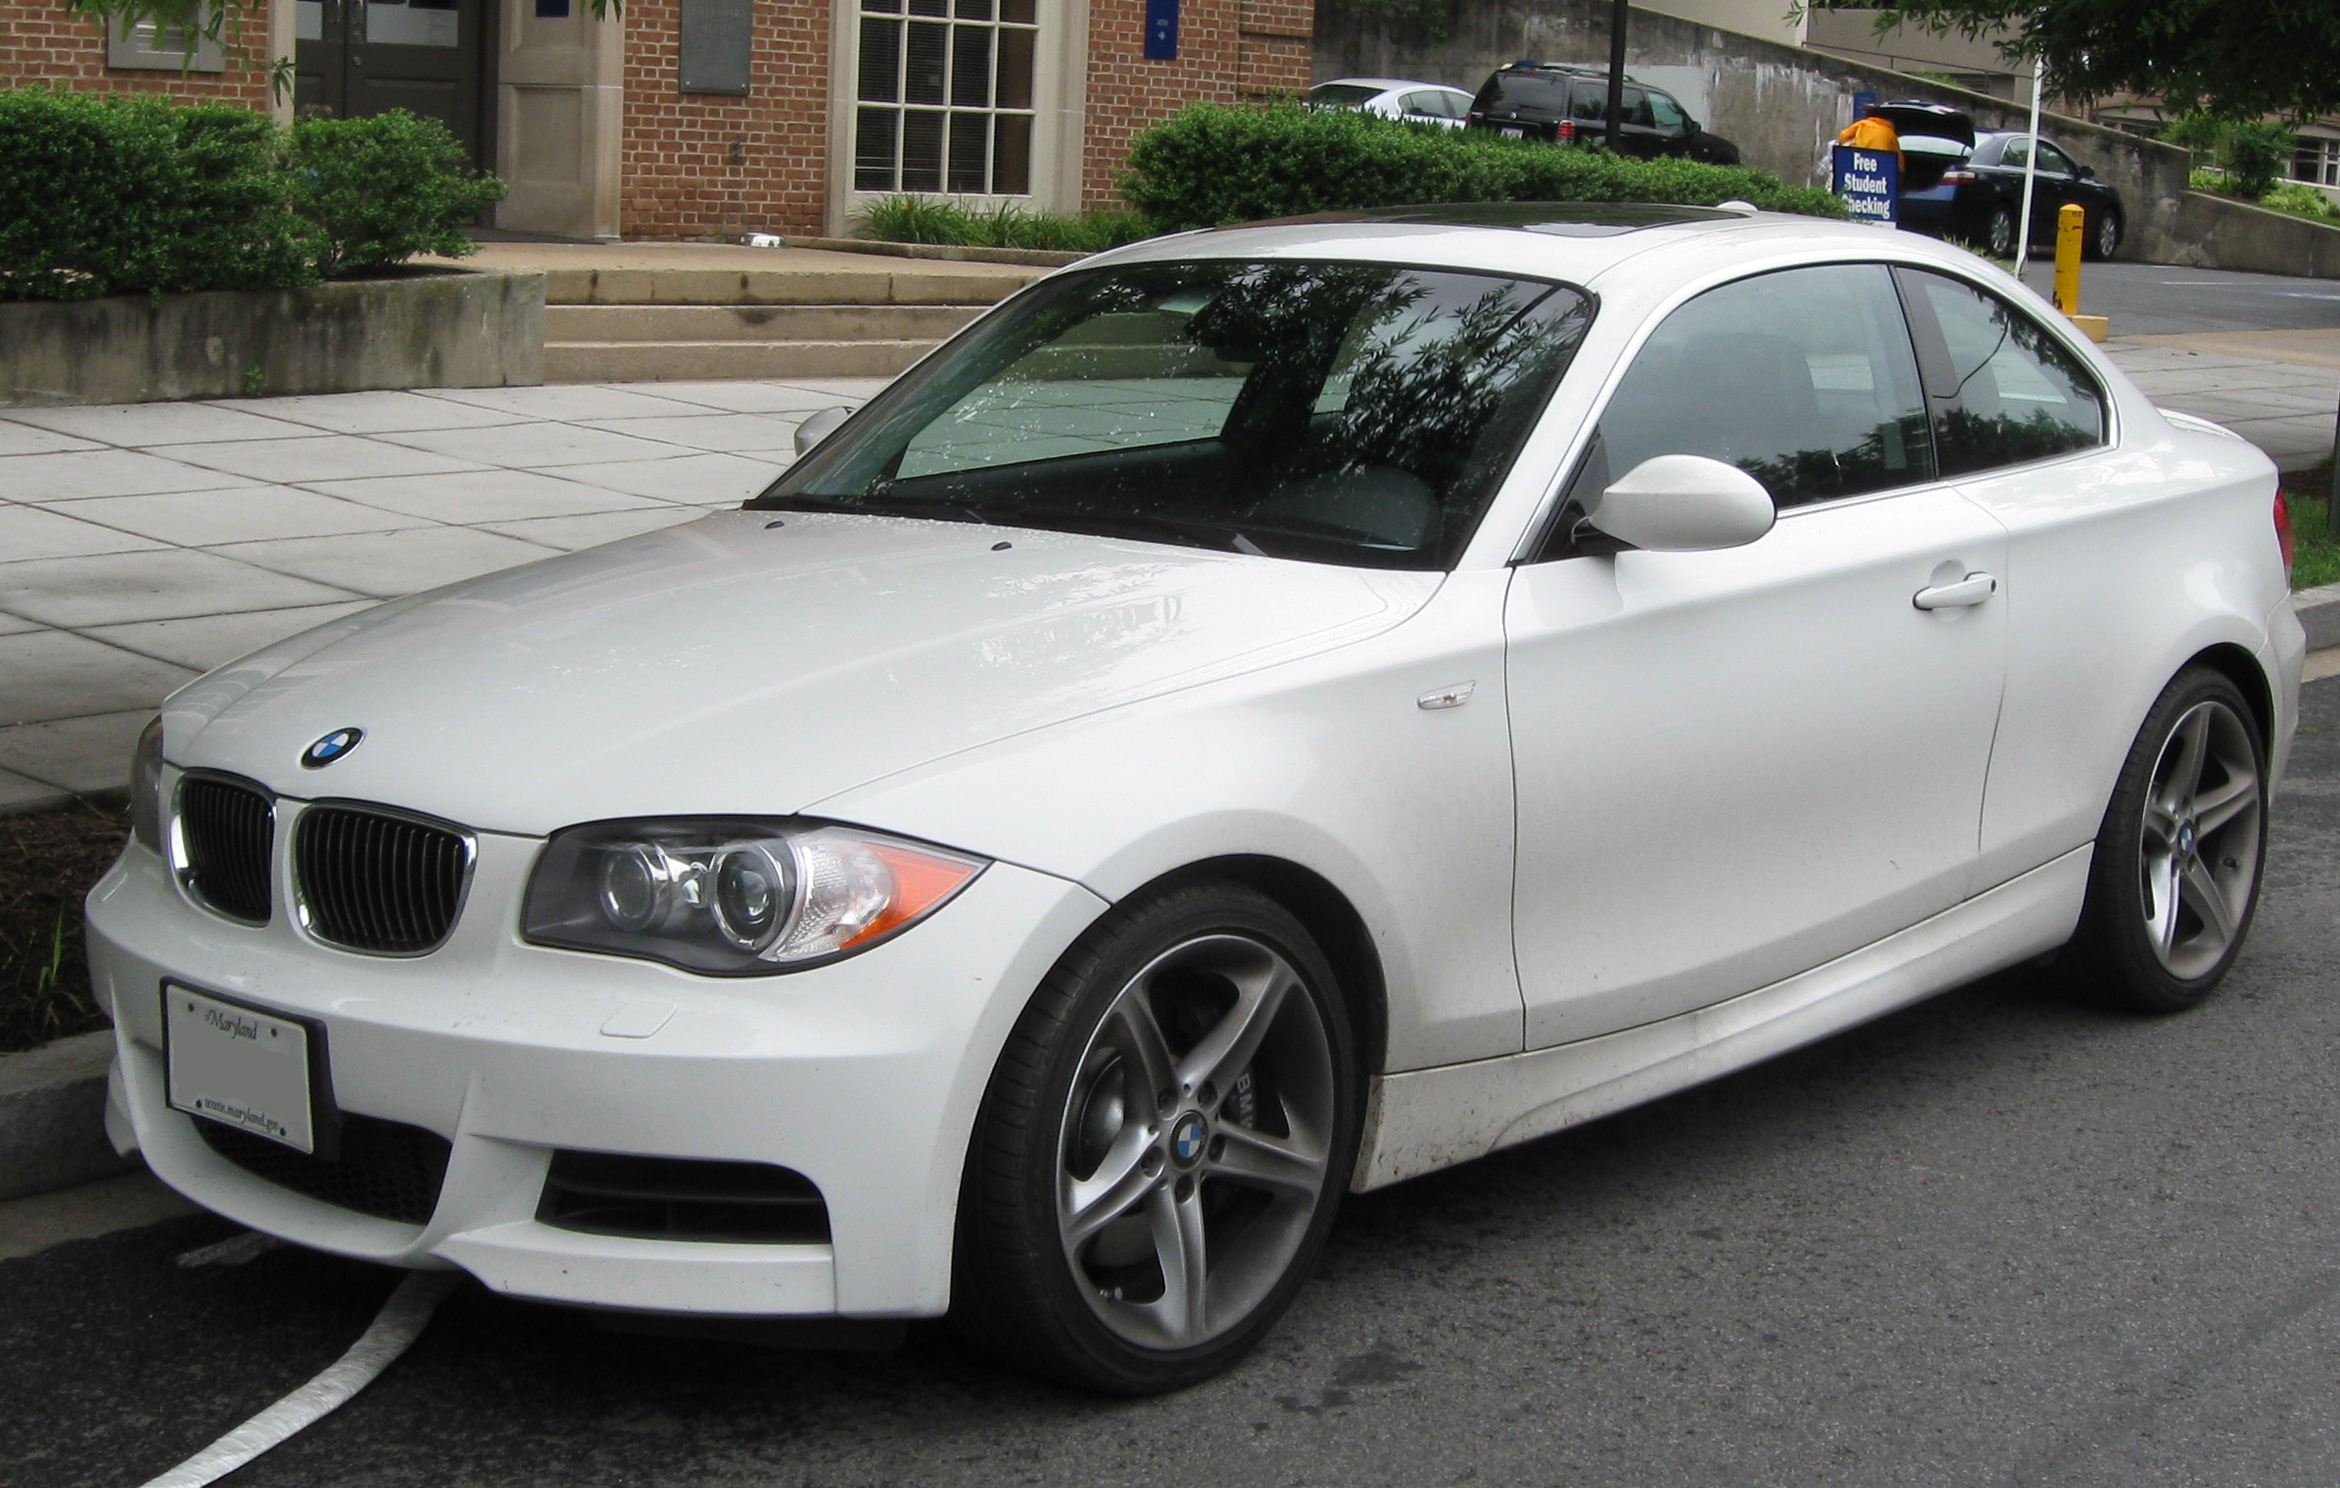 File:BMW 135i coupe.jpg - Wikimedia Commons